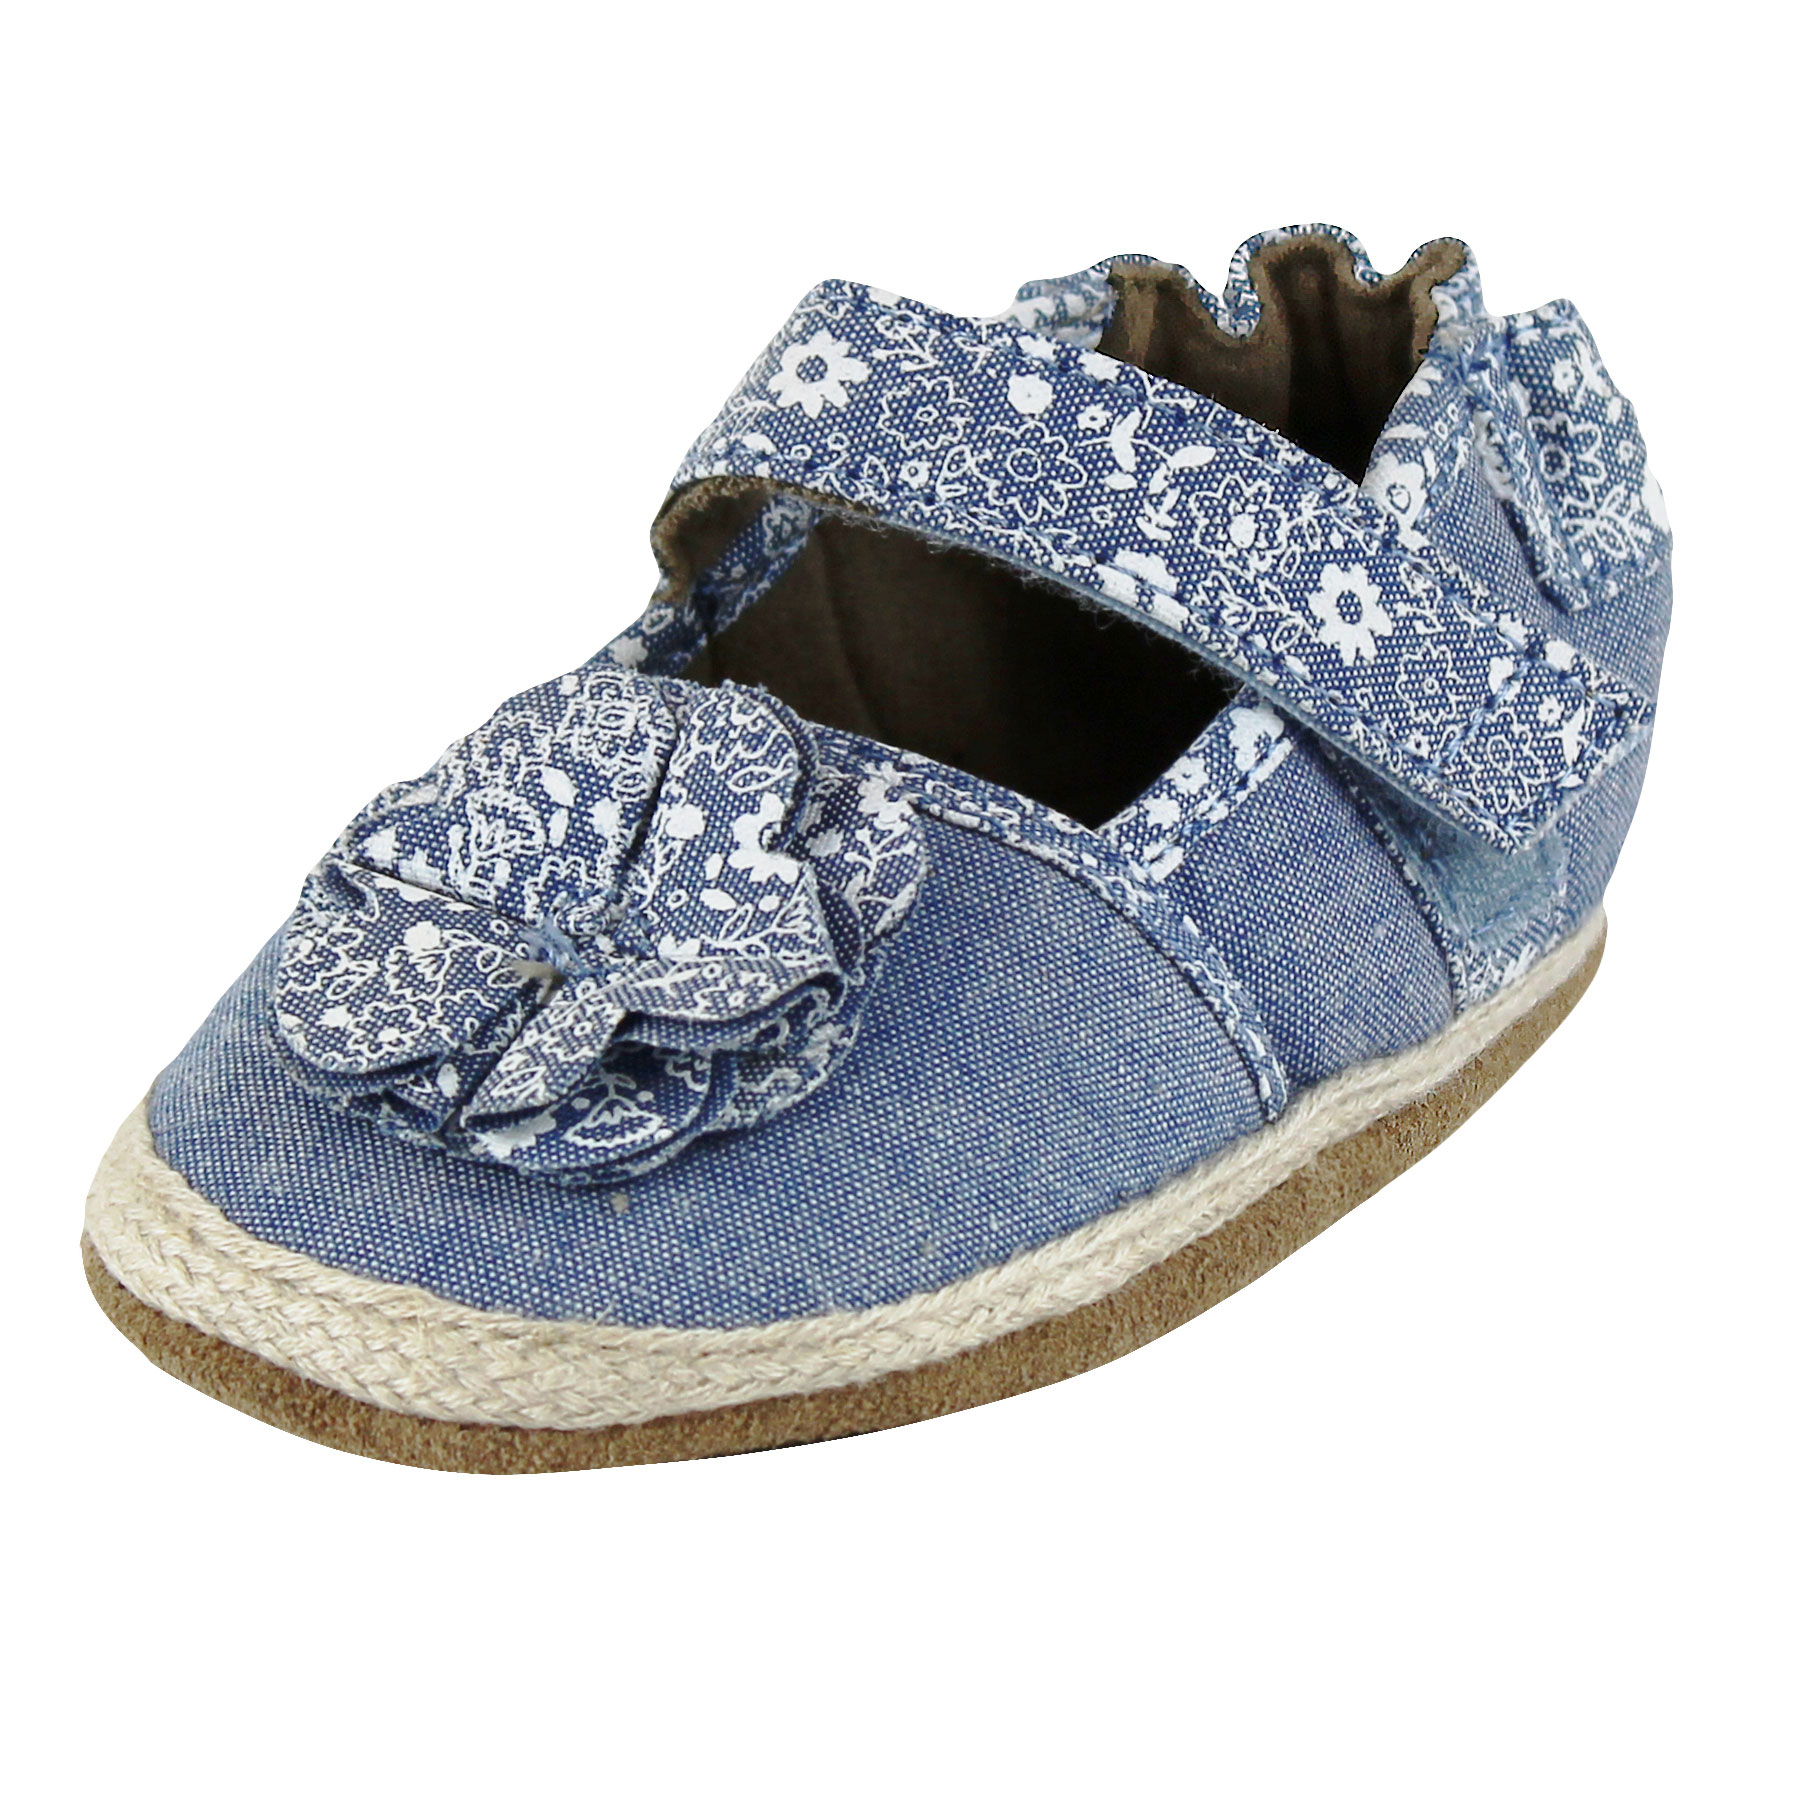 Robeez Baby Girls Espadrille Sandals 18 24 Months Crib Shoes Infant